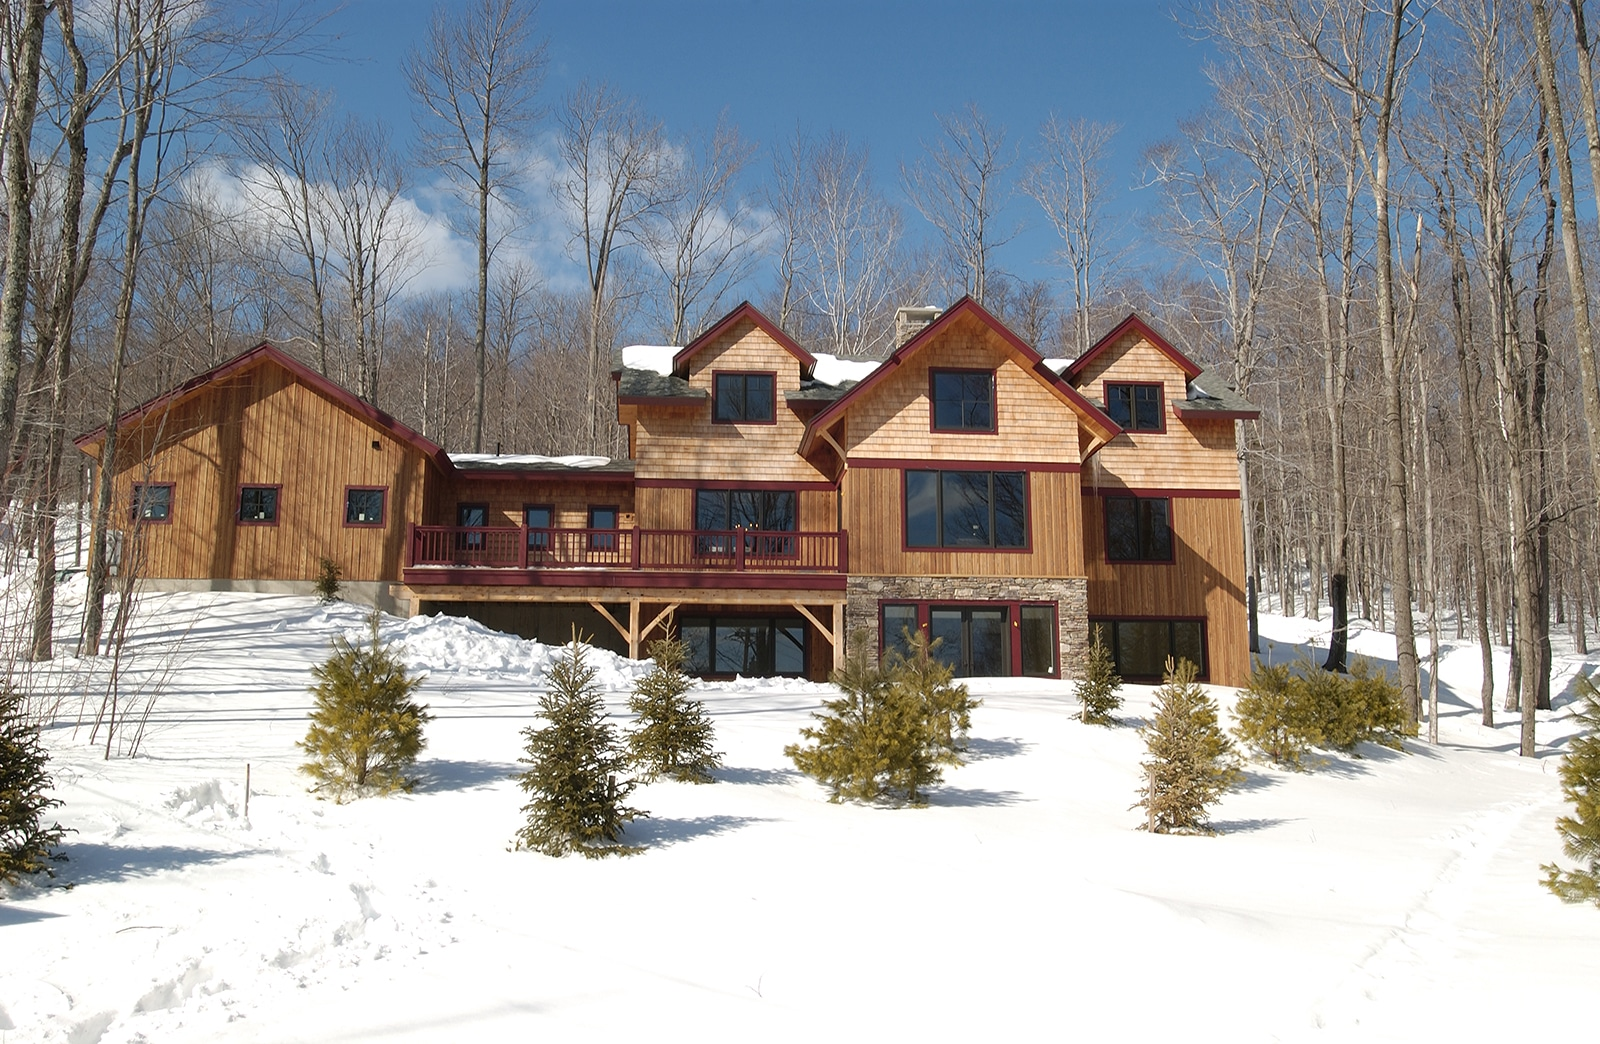 Bensonwood trailside ski house Ludlow Vt